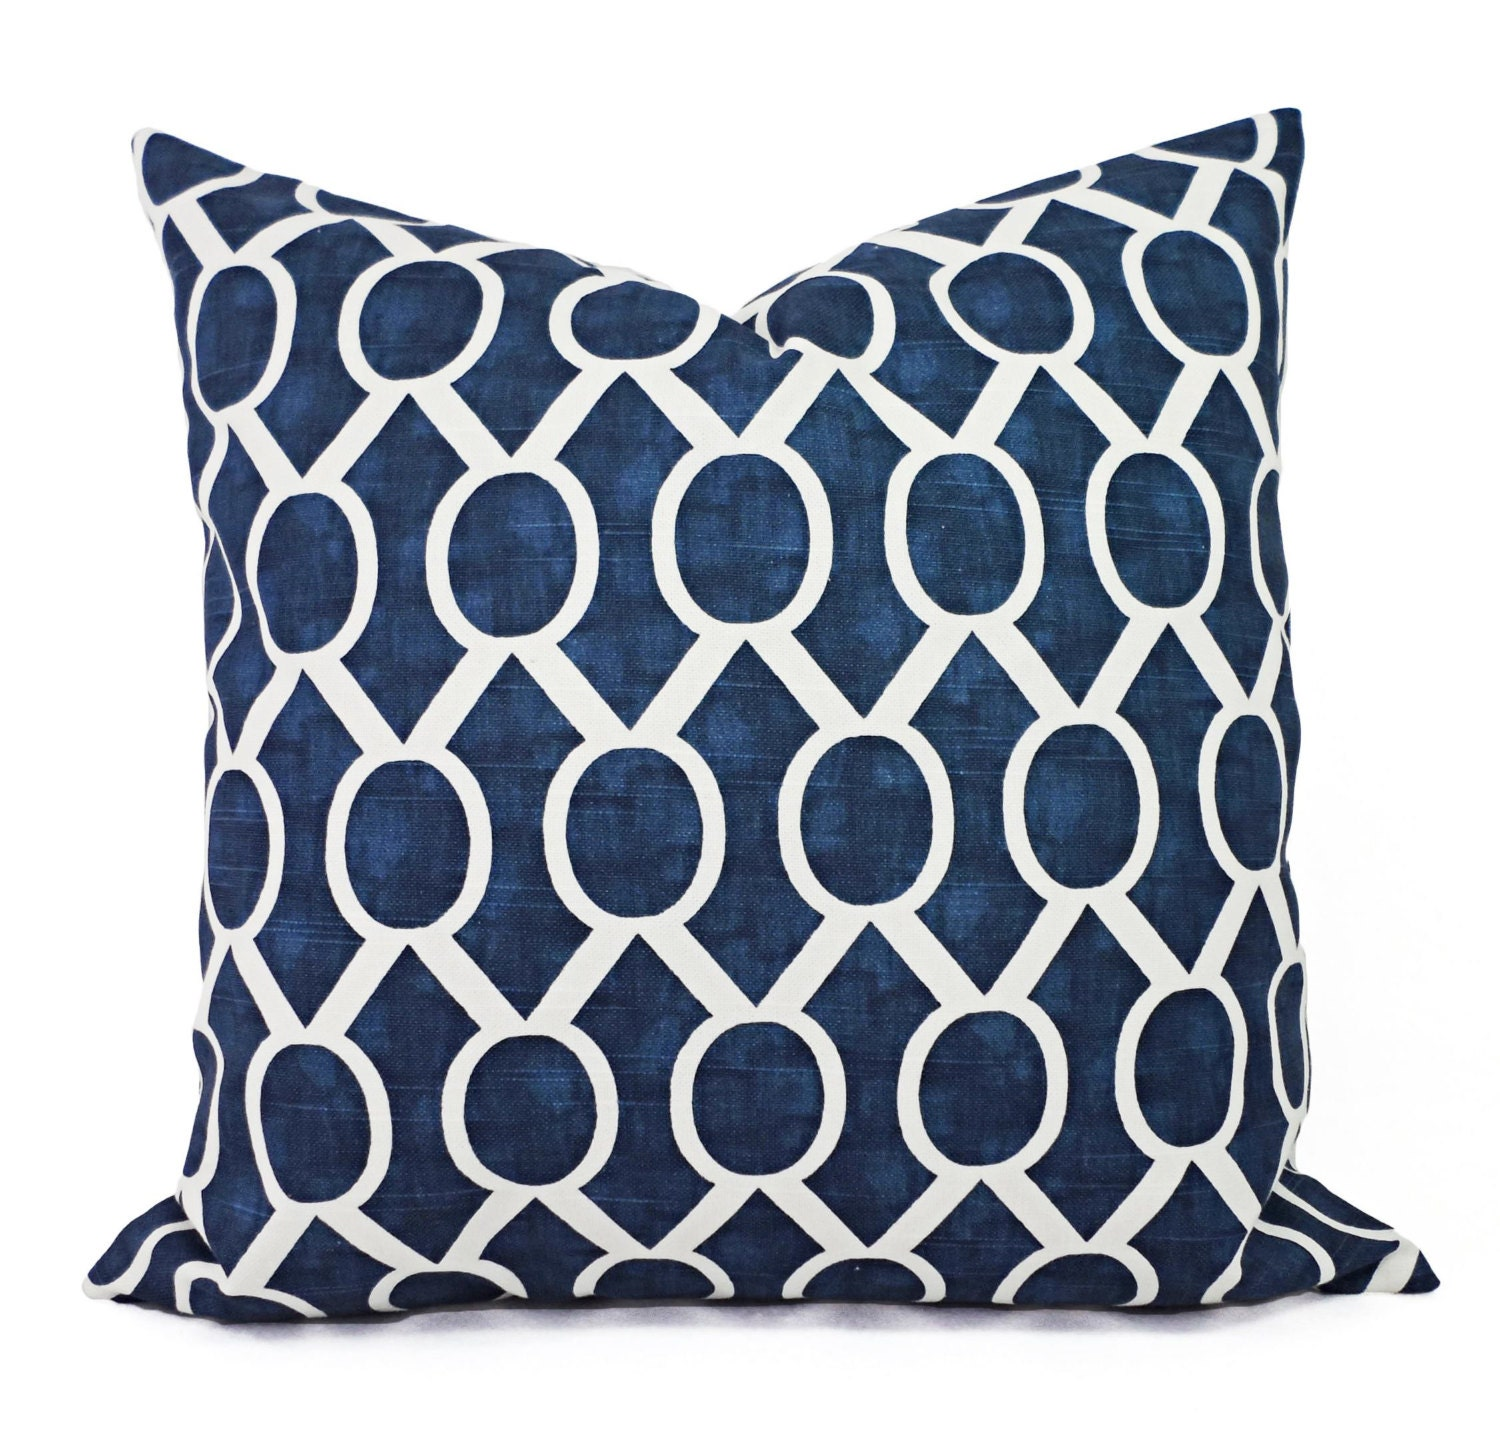 Decorative Pillows Navy : Navy Blue Decorative Pillows Two Navy Throw by CastawayCoveDecor